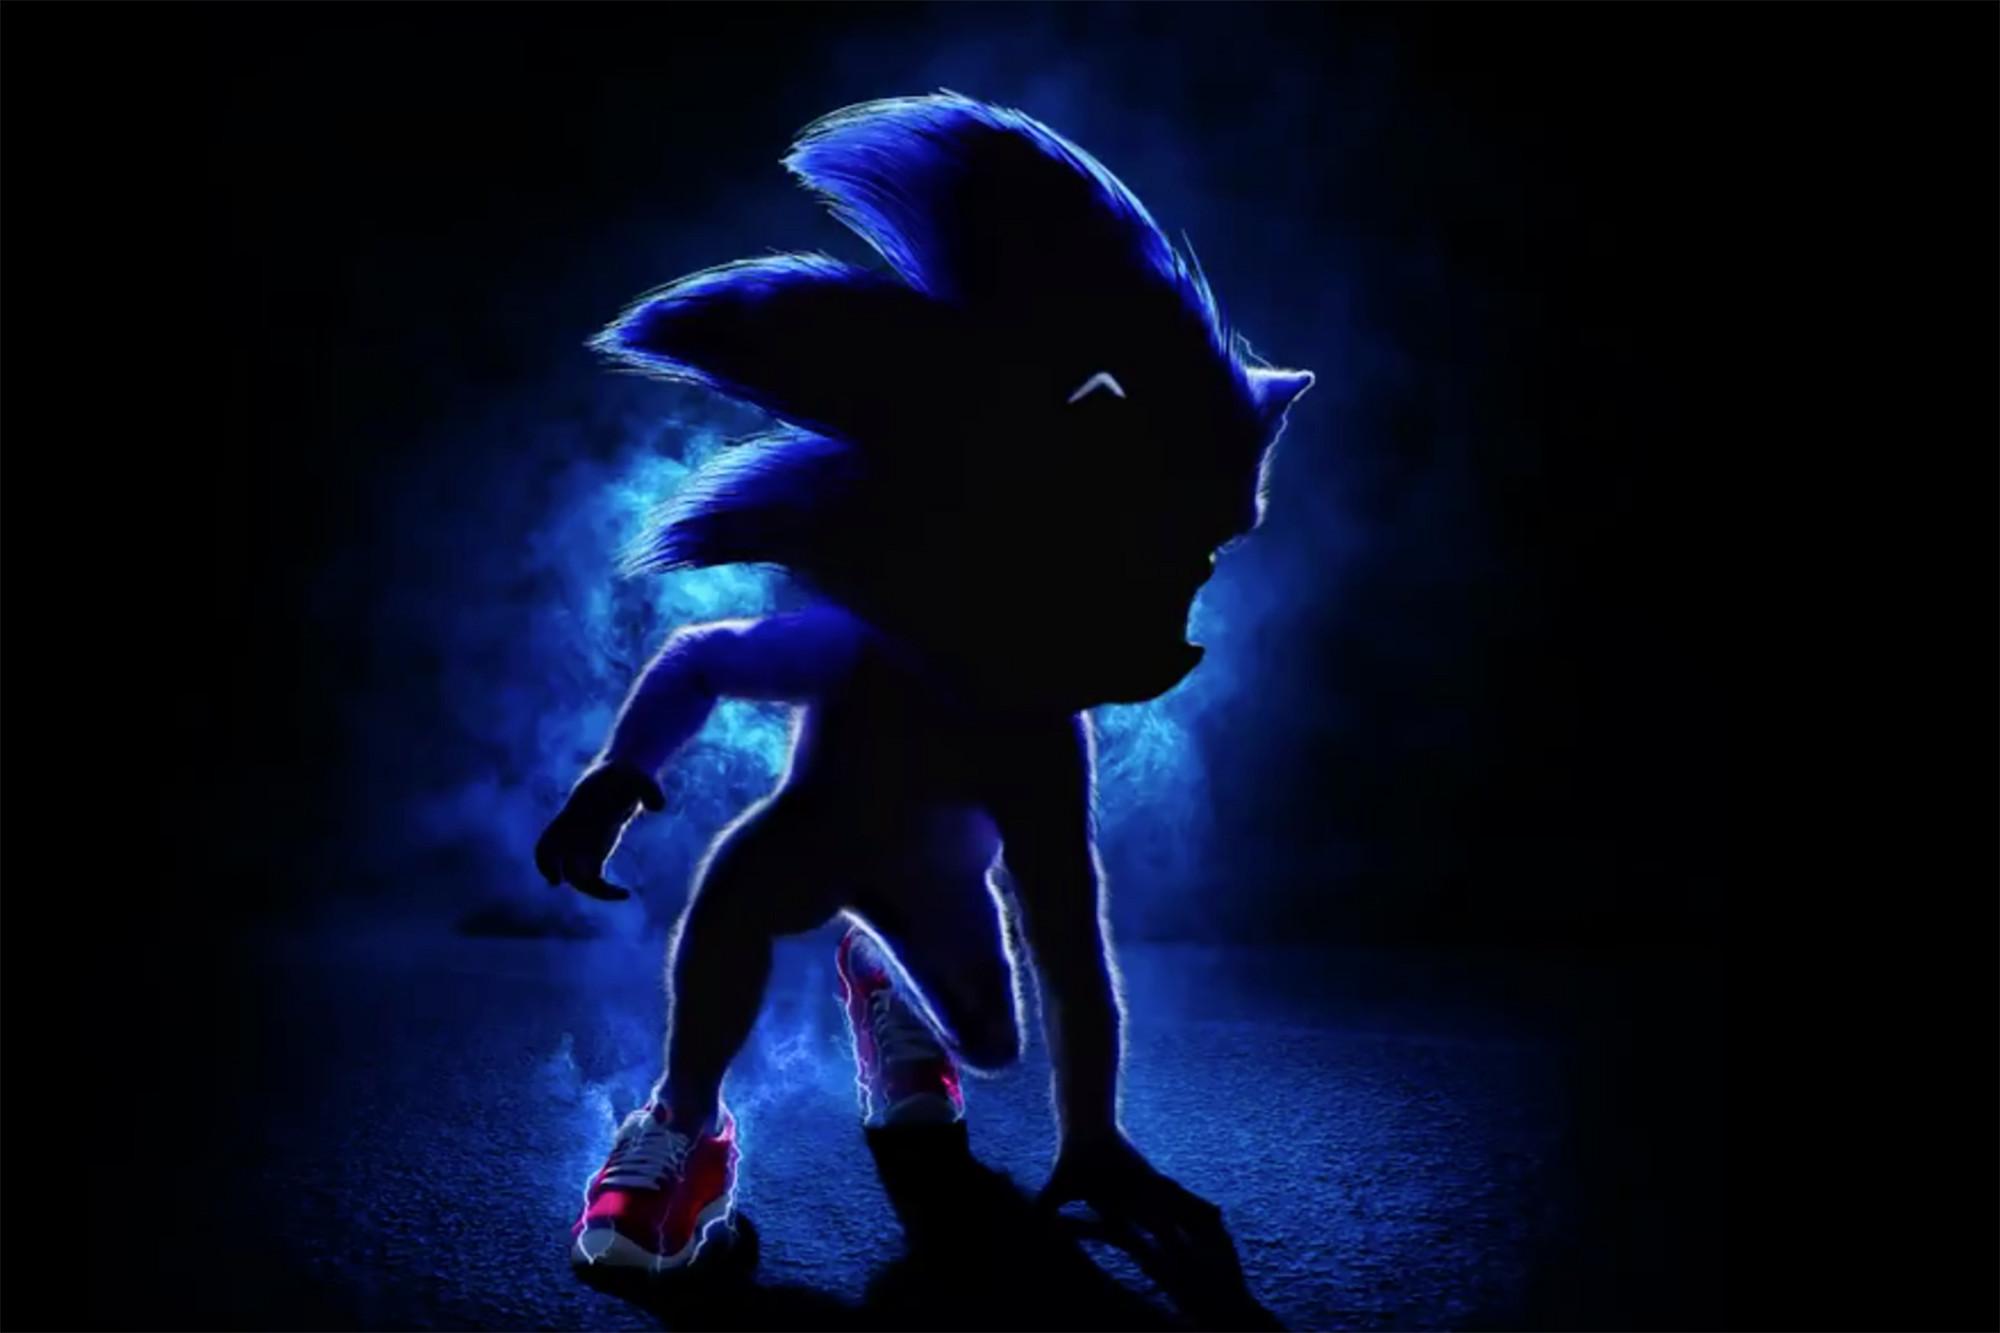 The new 'Sonic the Hedgehog' movie poster has purists peeved